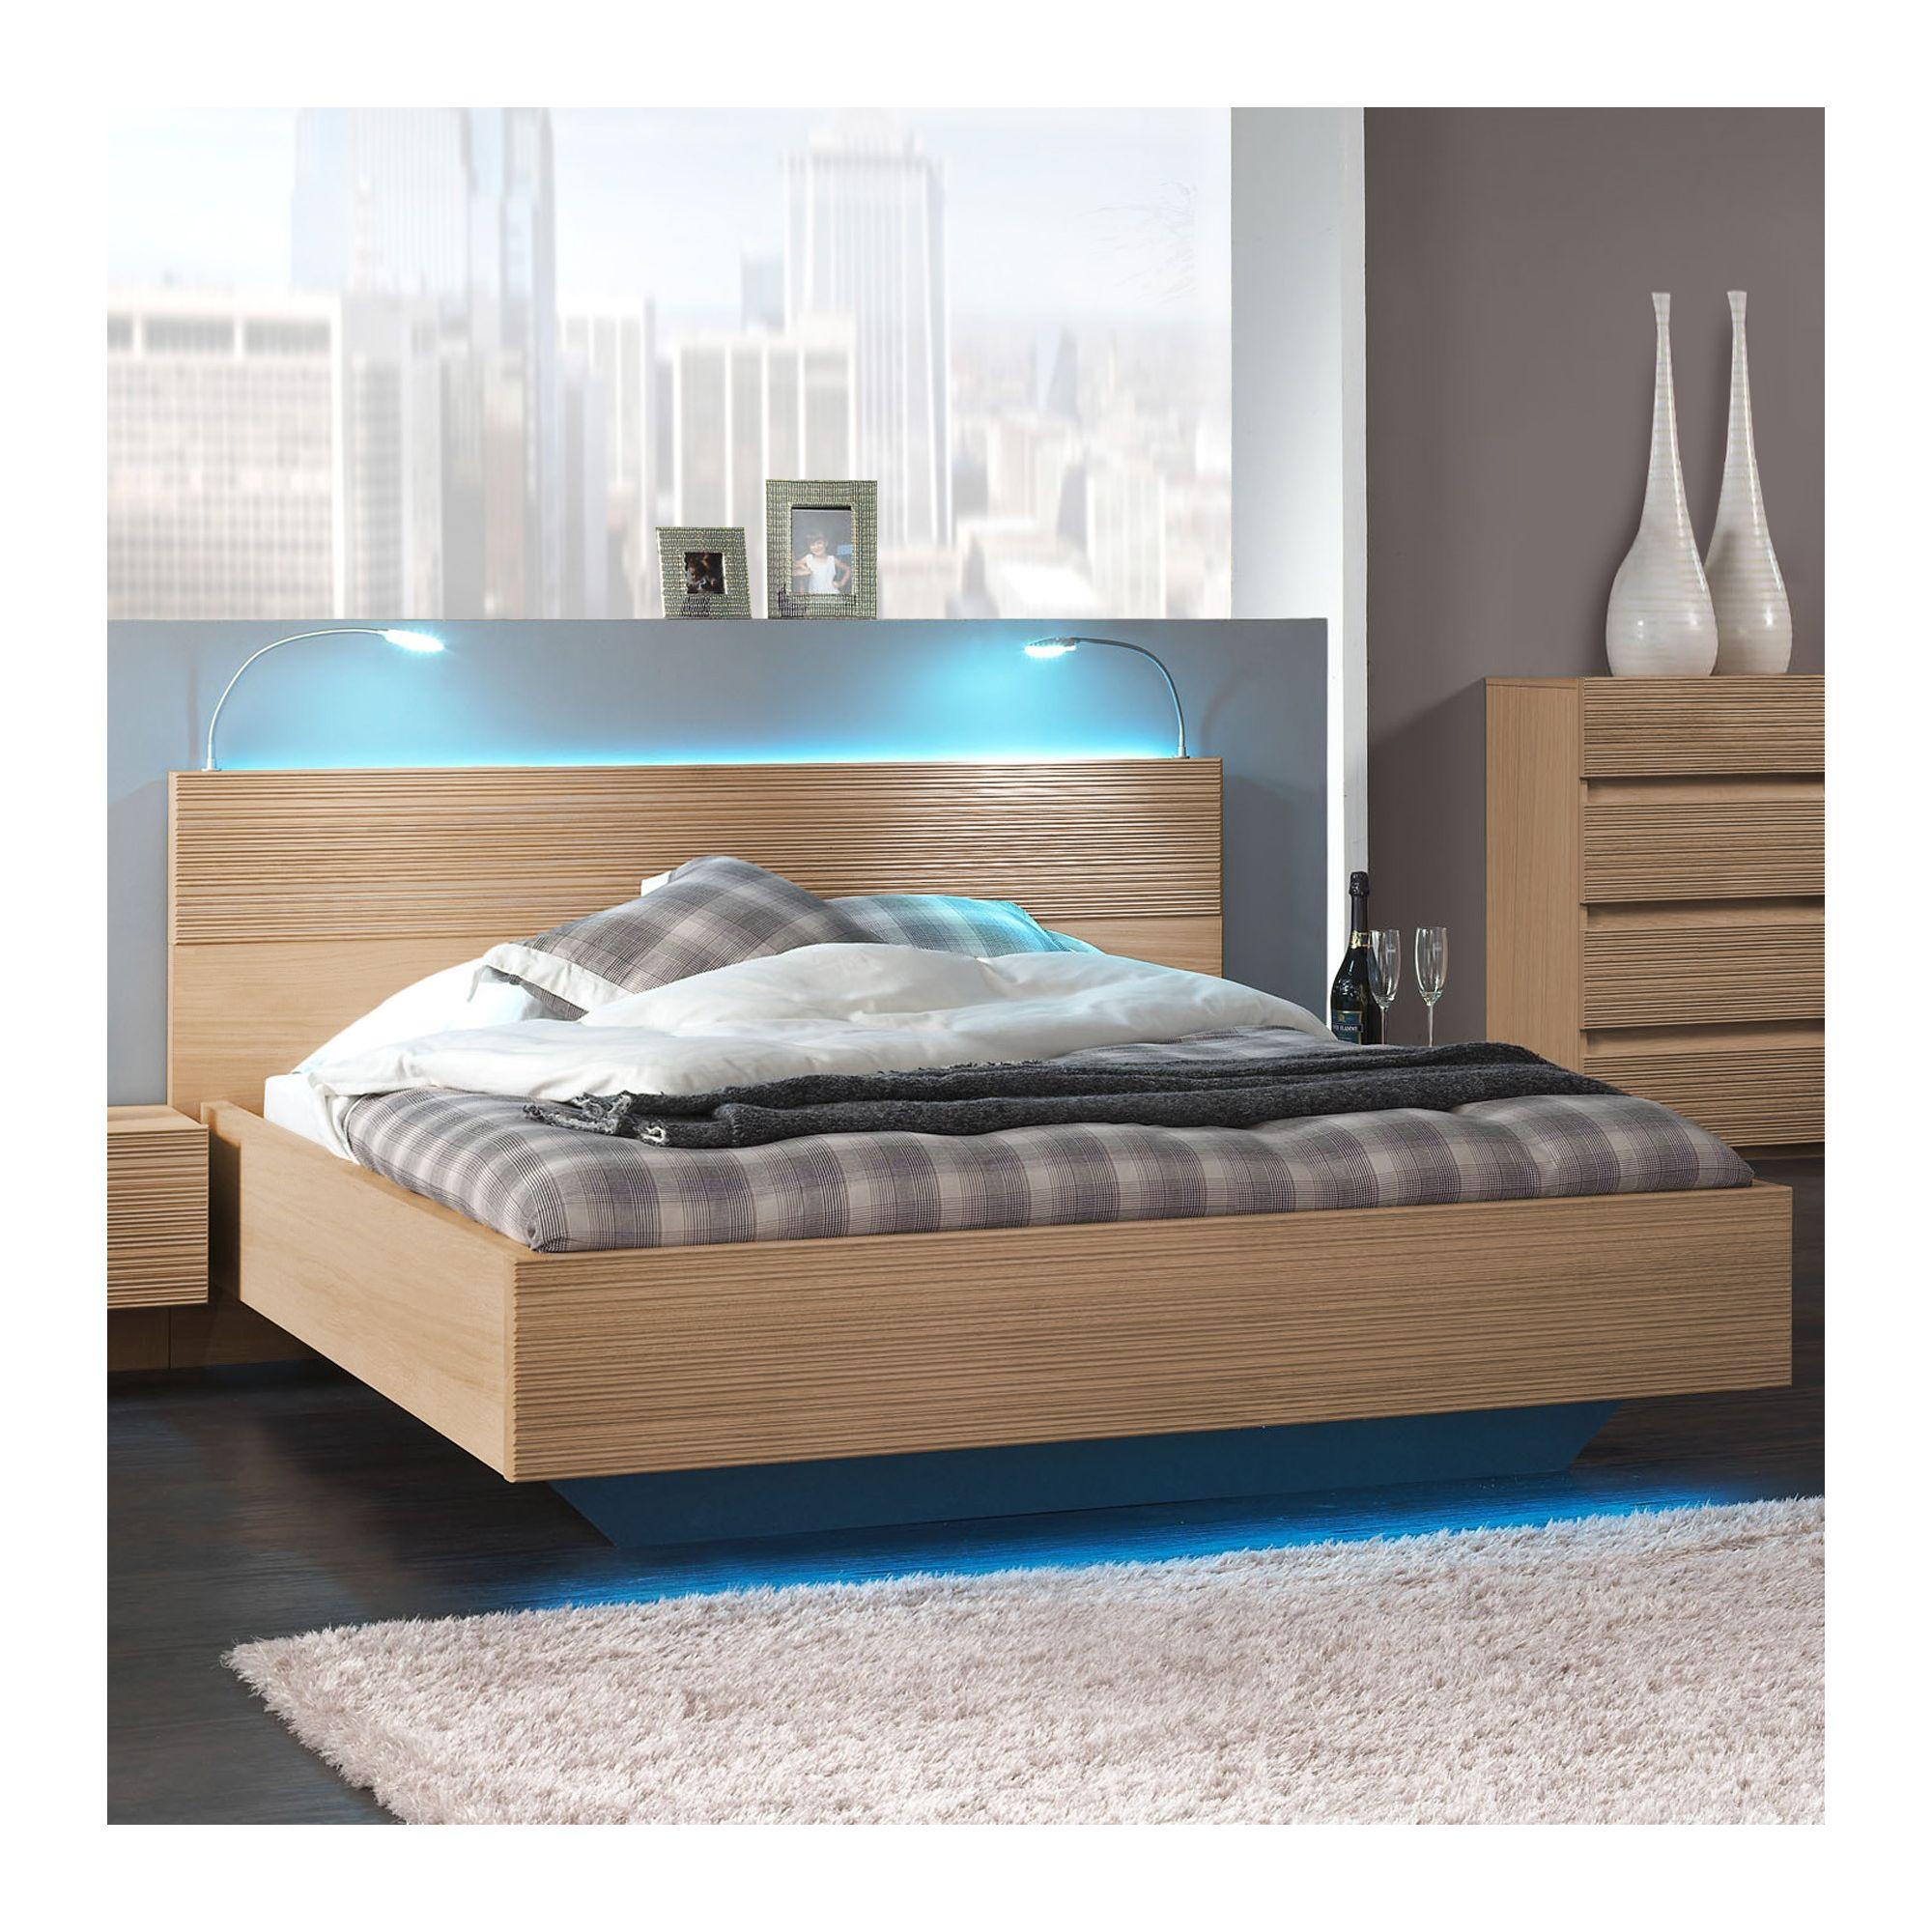 Sleepline Diva Bed - European Double - Grey Mat Lacquered at Tesco Direct